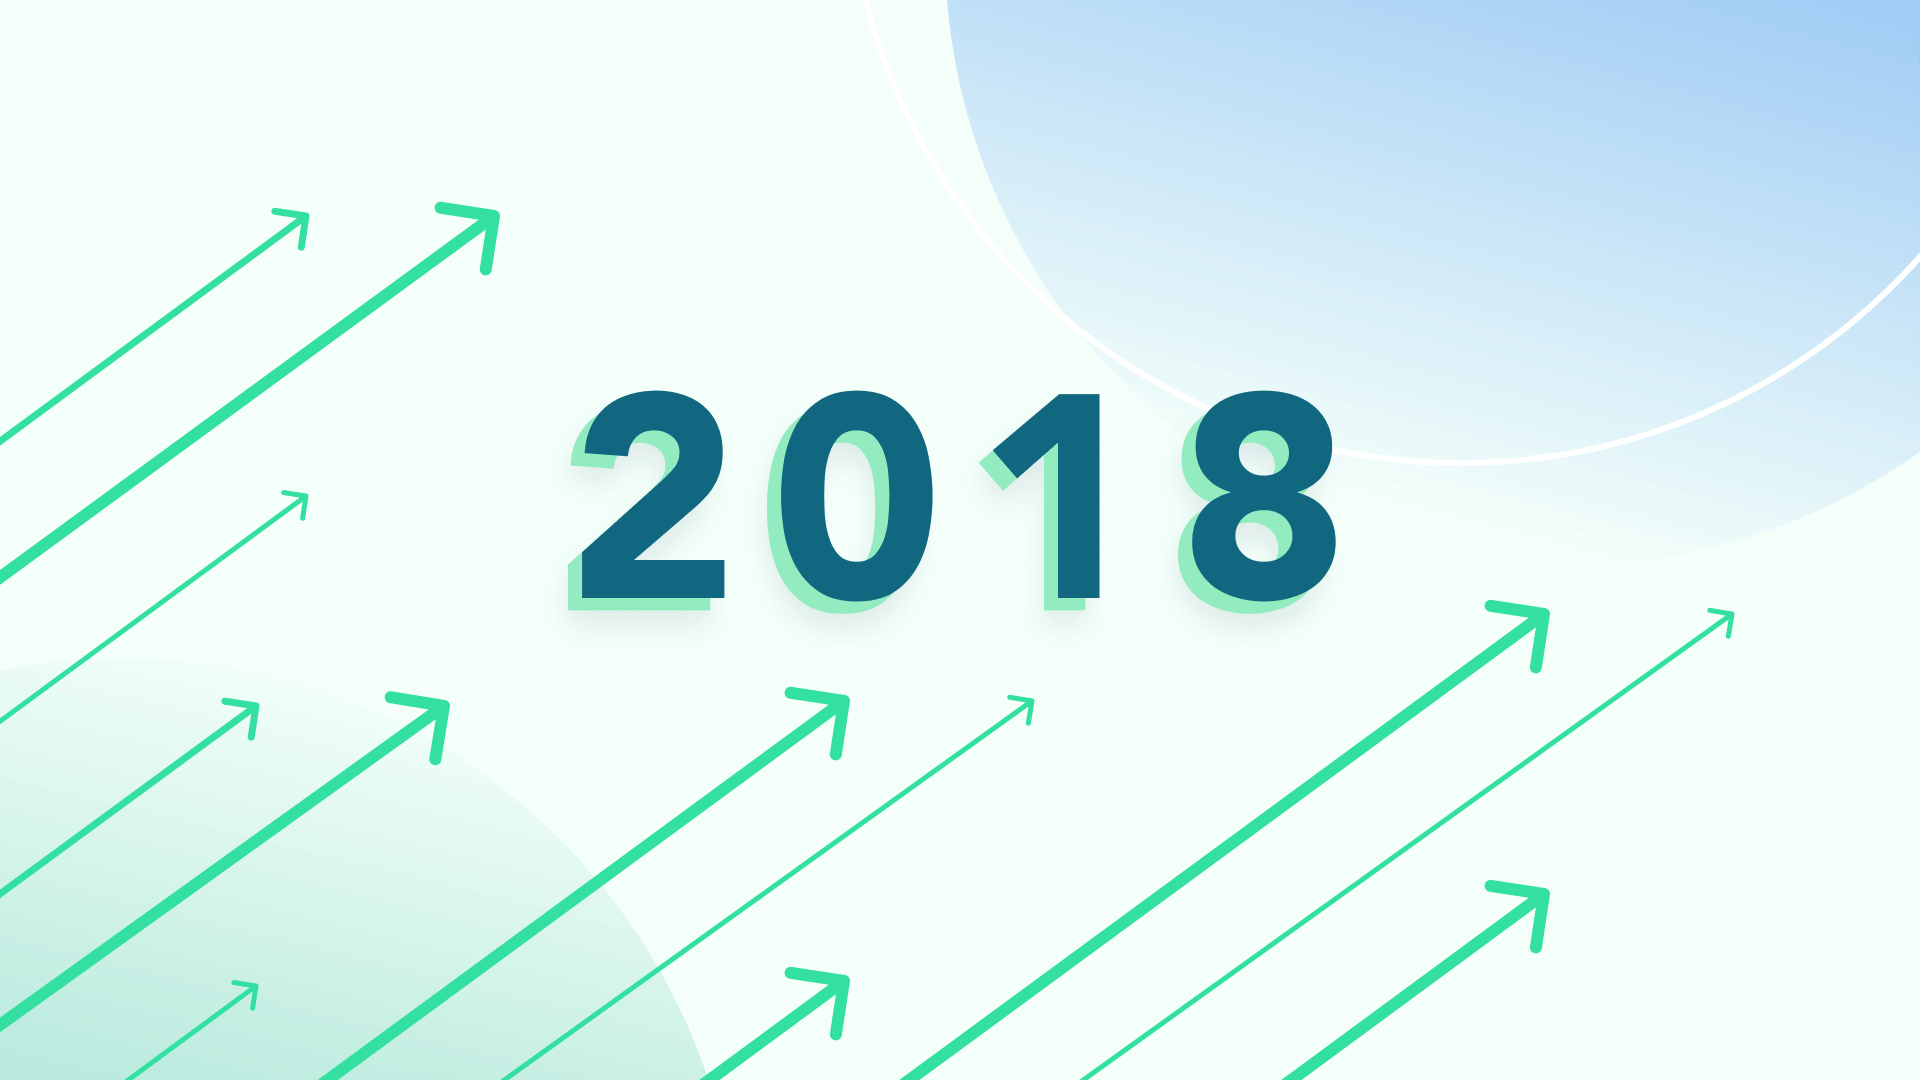 2018 Was a Breakout Year, but We're Just Getting Started